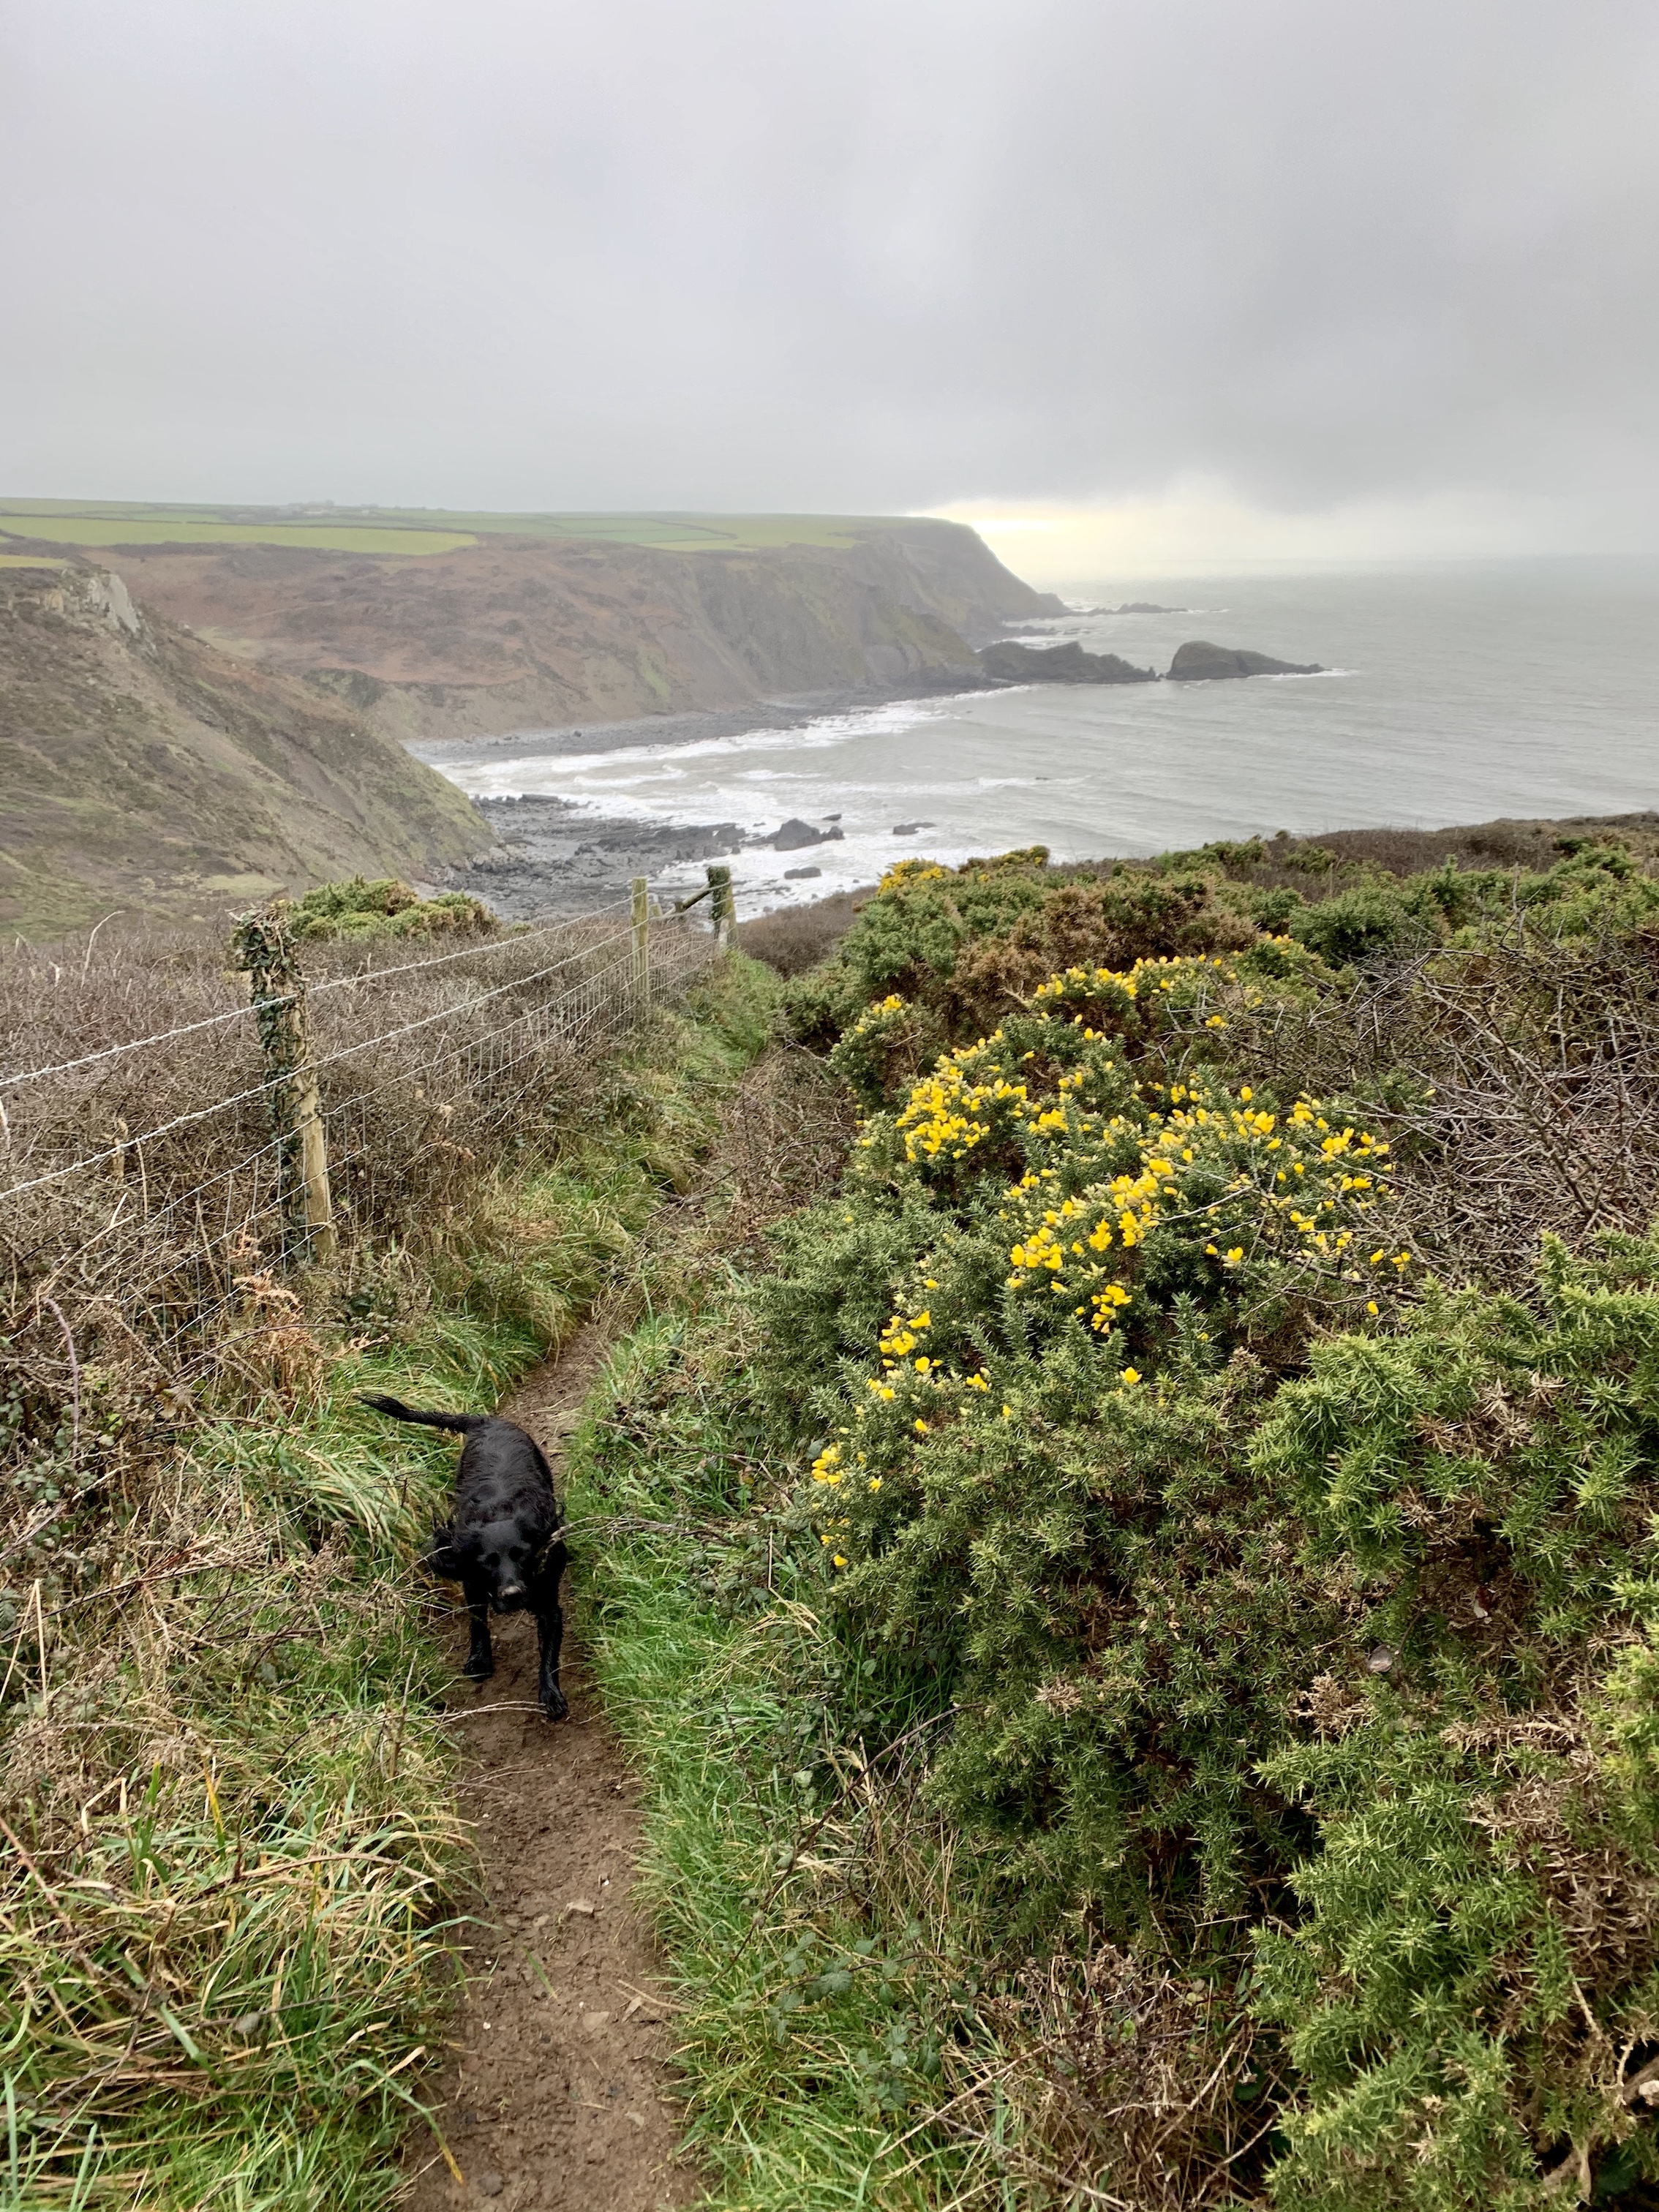 The South West Coast Path from Hartland Quay to Morwenstow